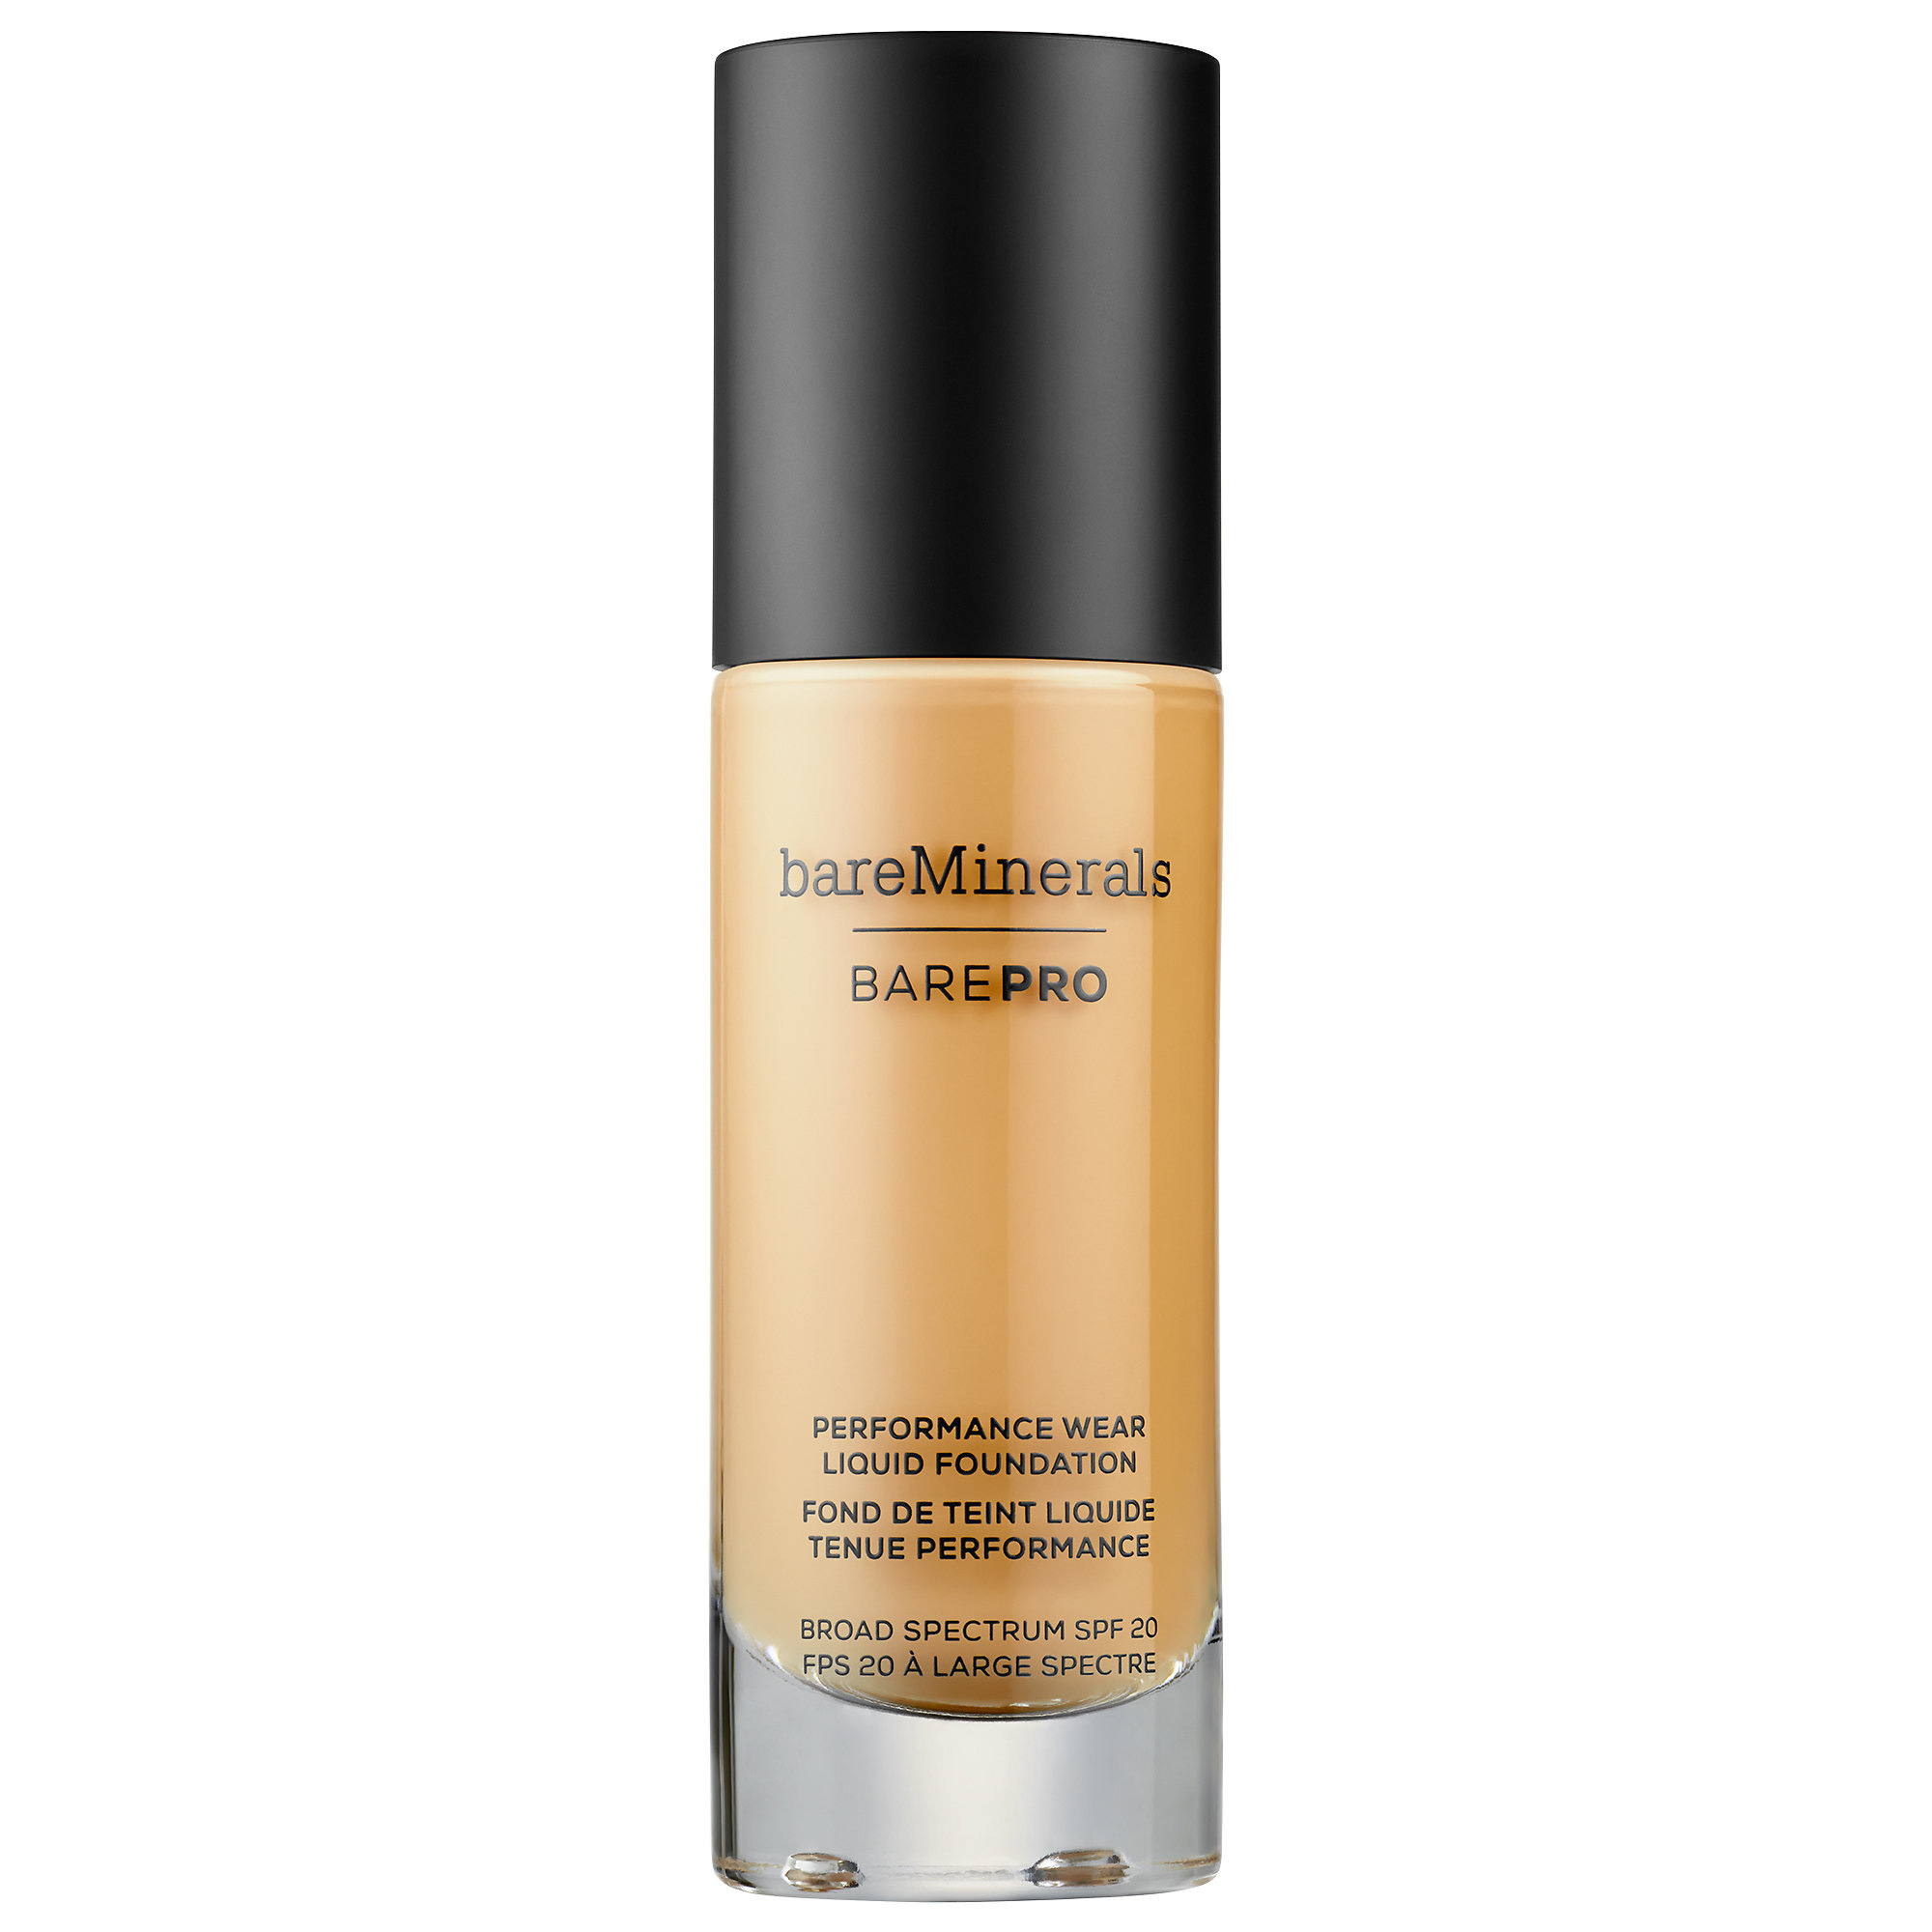 BareMinerals BarePRO Performance Wear Liquid Foundation Broad Spectrum SPF 20